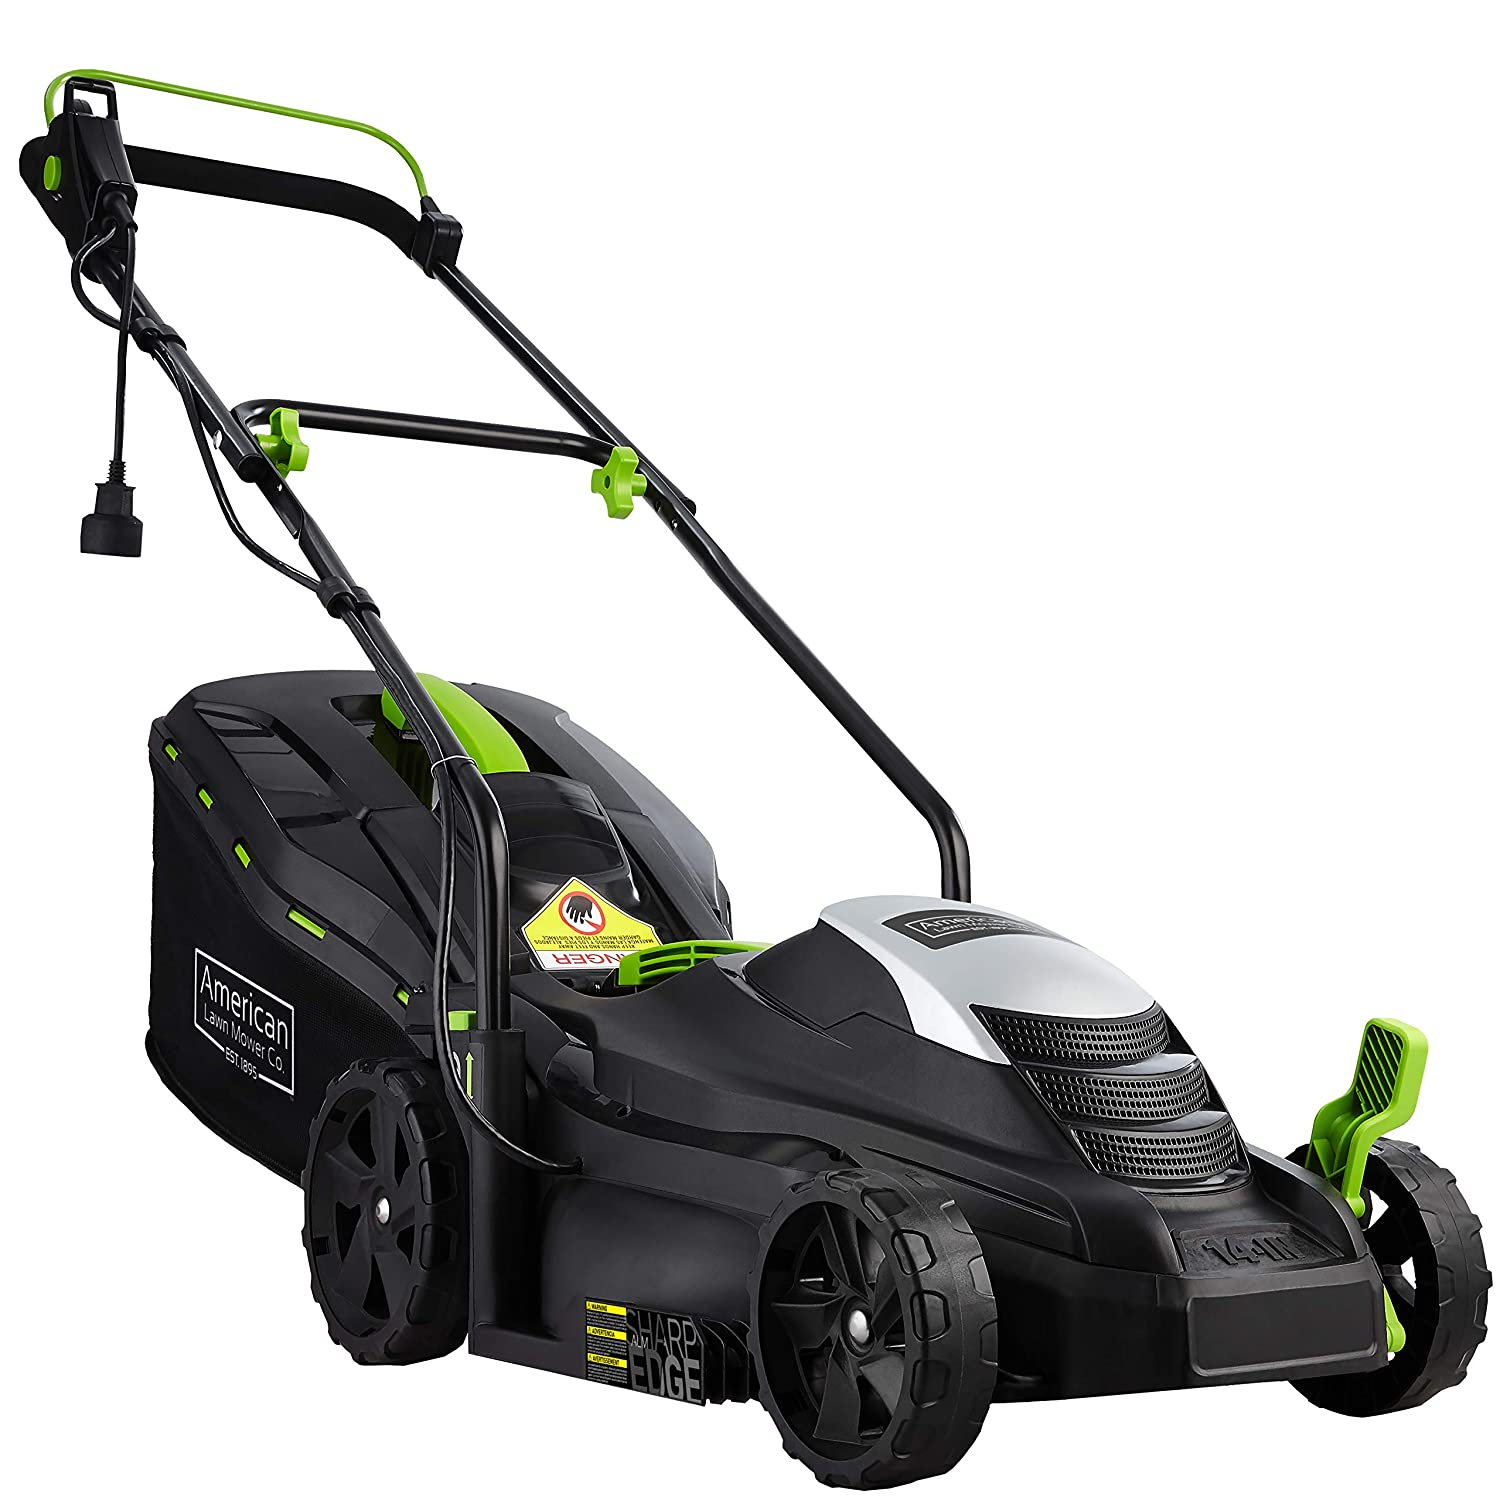 Stand Behind Lawn Mower >> American Lawn Mower Company 50514 14 Inch 11 Amp Corded Electric Lawn Mower Black